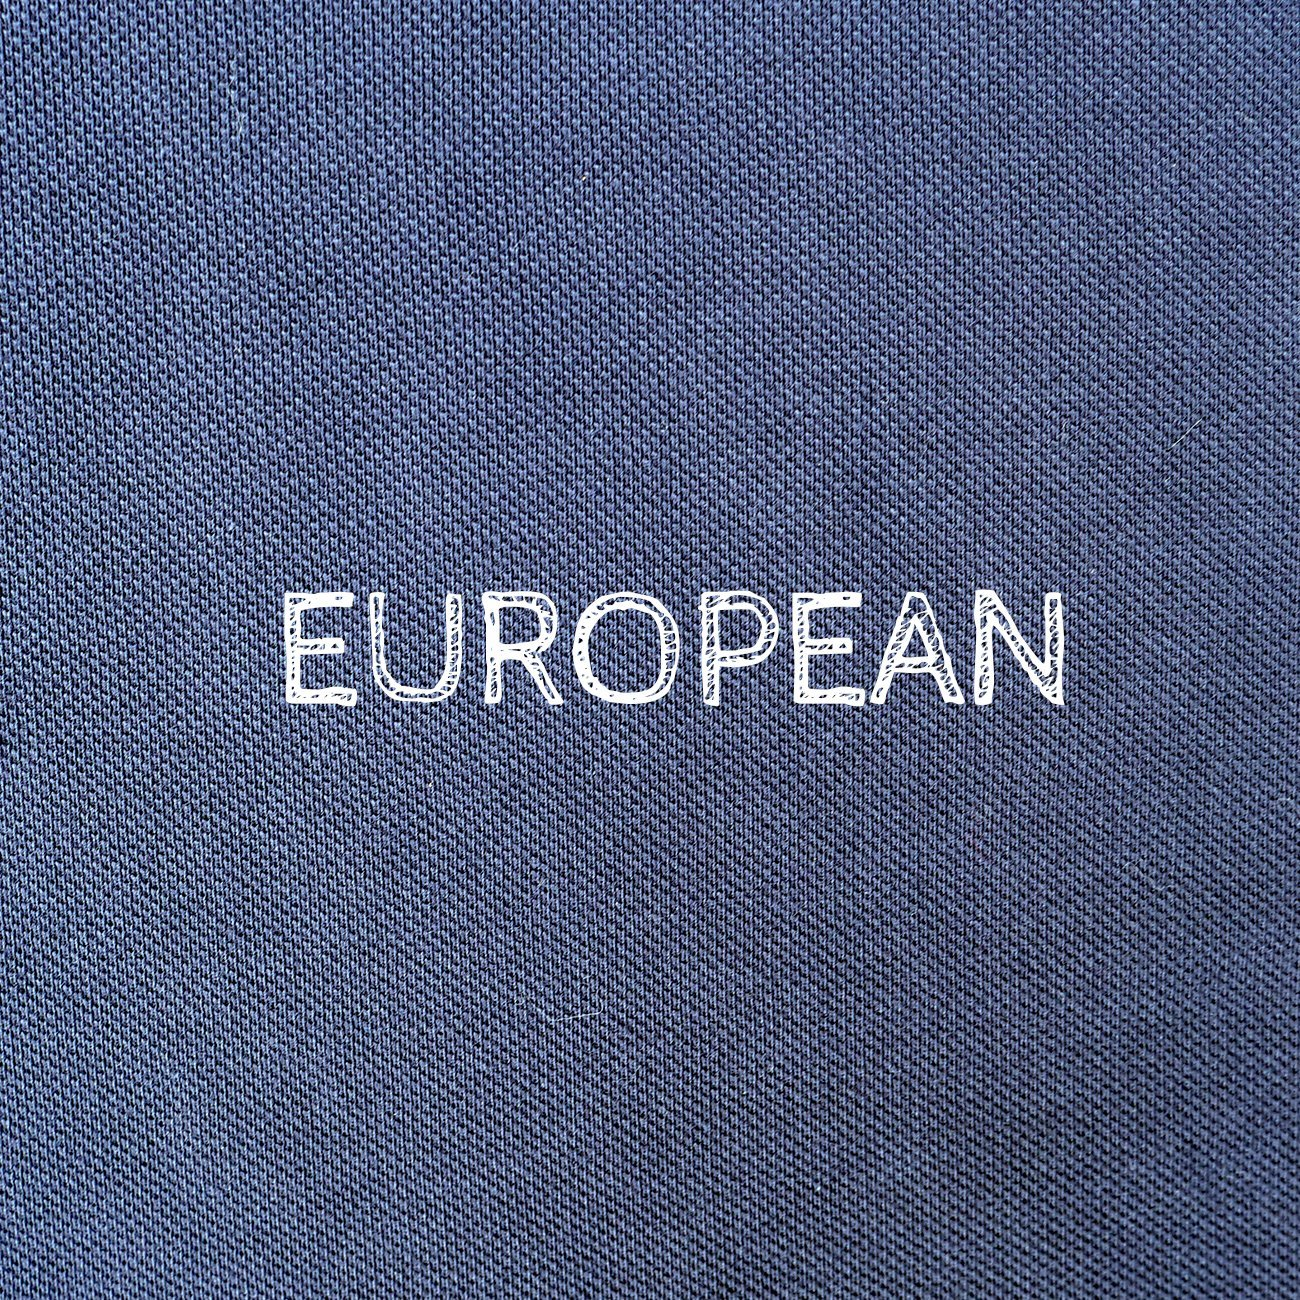 Polo - Printed statement, Polo - European Flag Fashion, Clothing & Apparel from  European By Choice